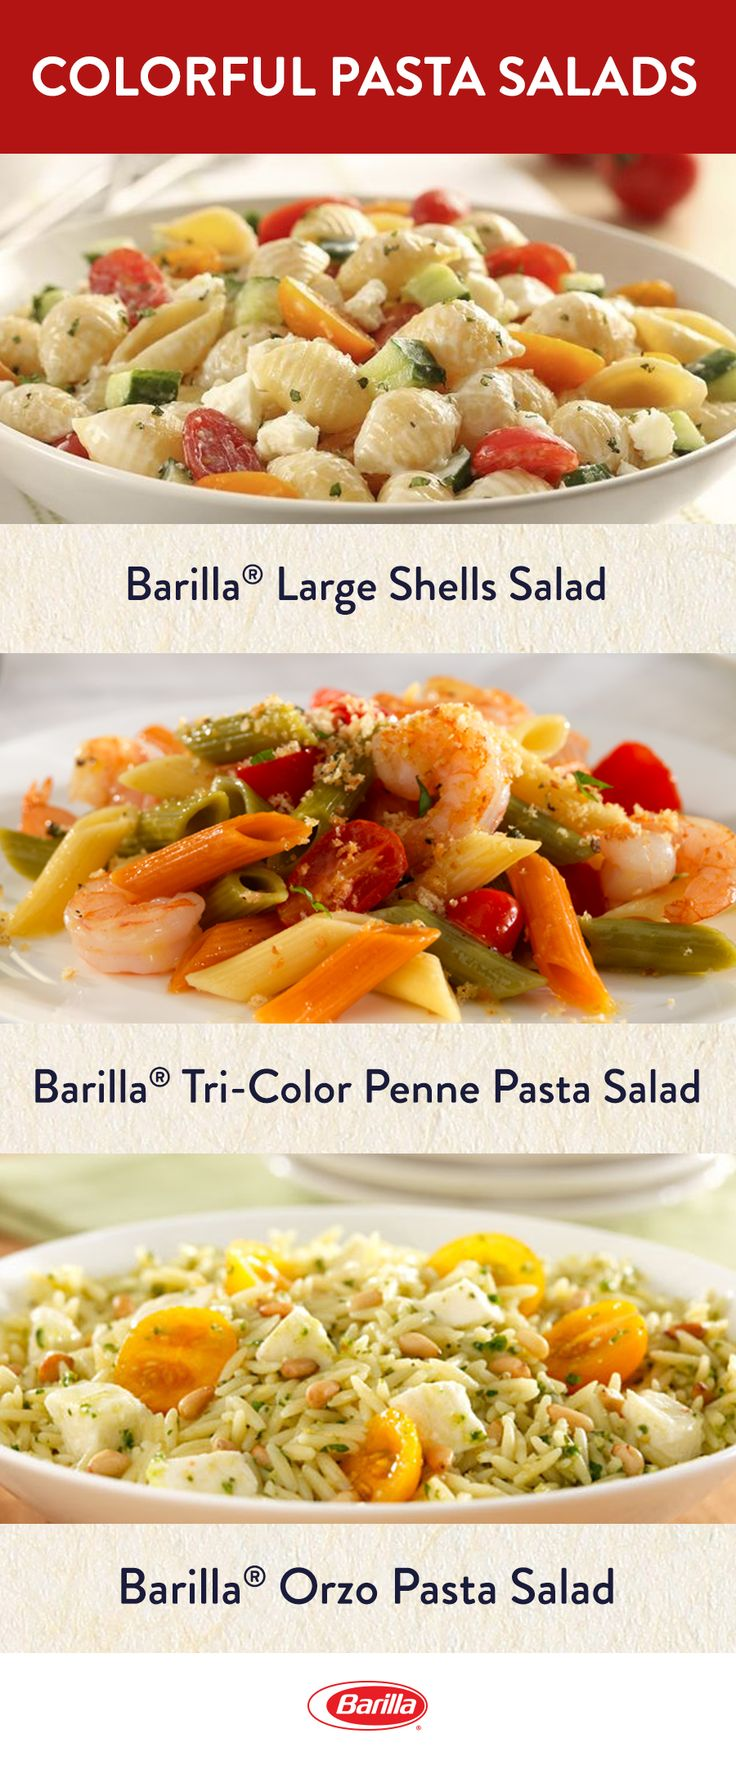 Celebrate National Picnic Month with one of our favorite pasta salad recipes - filled with fresh veggies, meat and cheese! From gluten free, to tricolor, you will find some of the tastiest summertime salads when you save this pin.